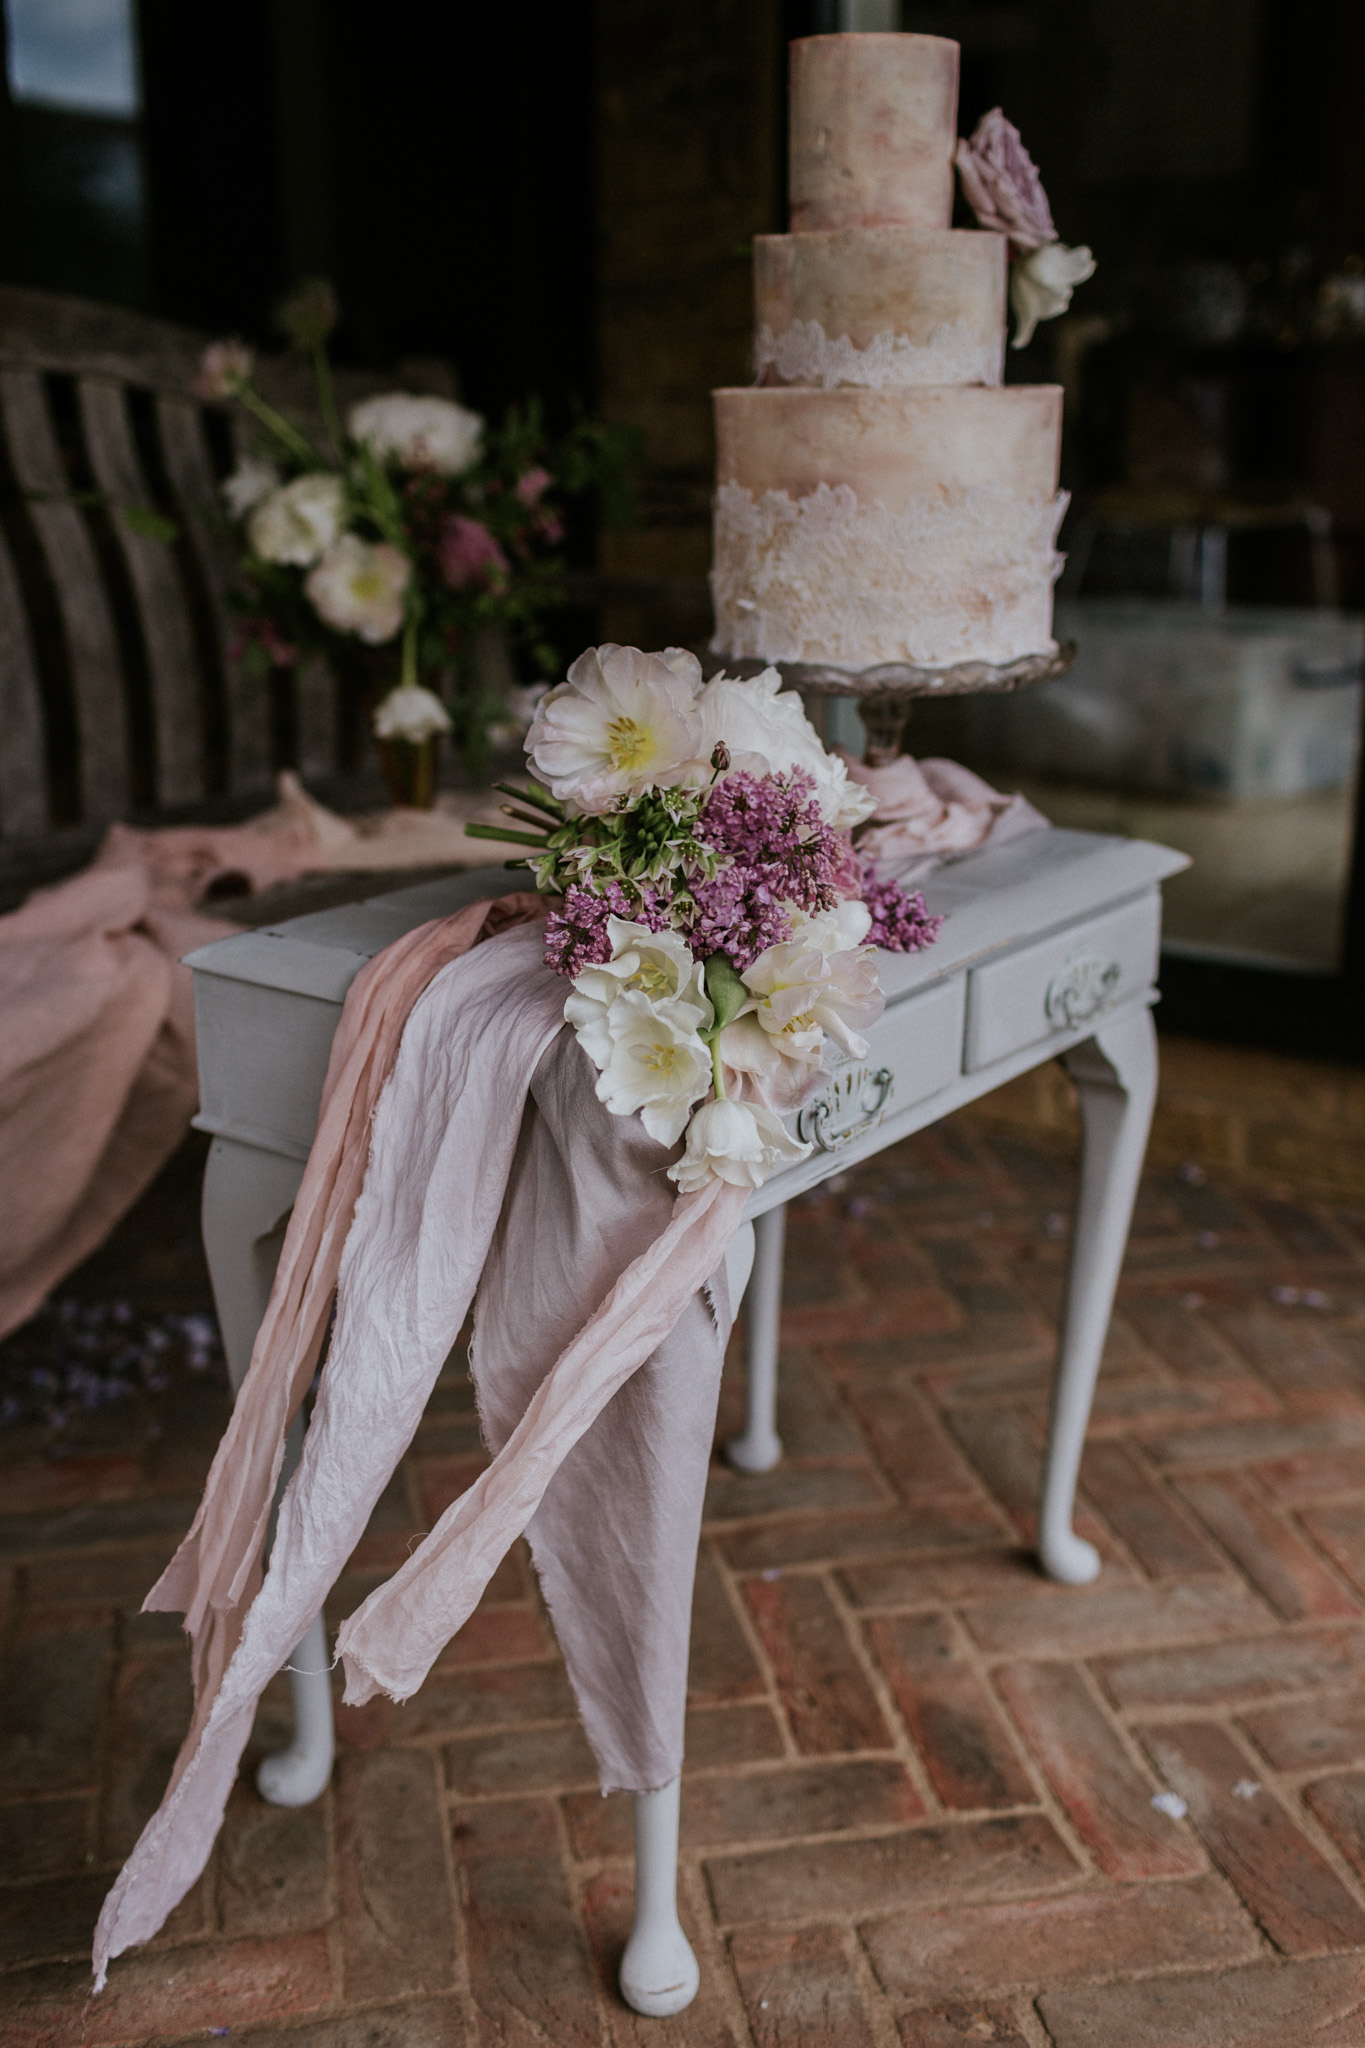 Gorgeous florals and the second beautifully artistic wedding cake design.